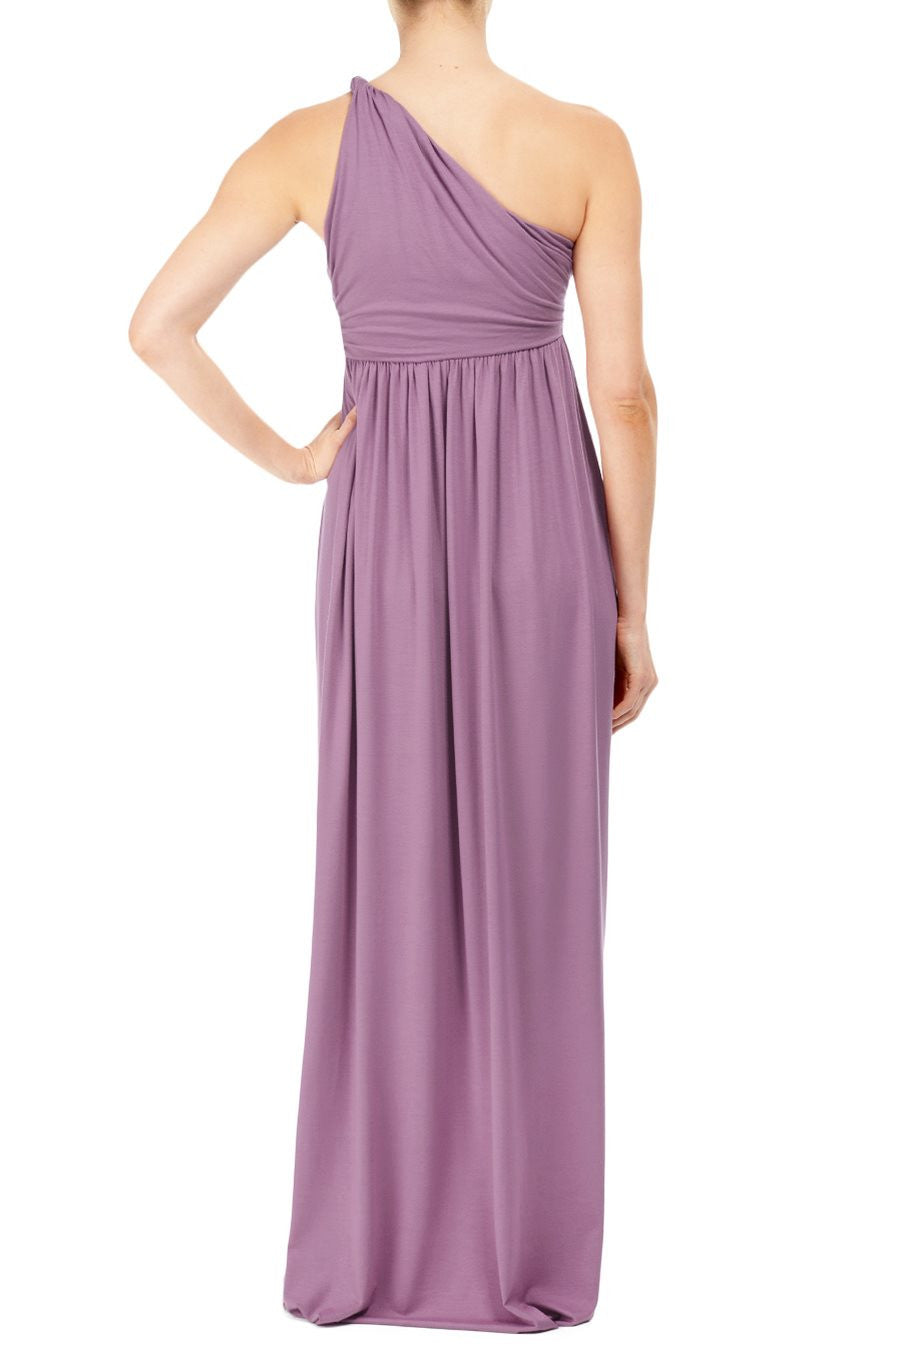 LONG TWIST SHOULDER DRESS - FOXGLOVE